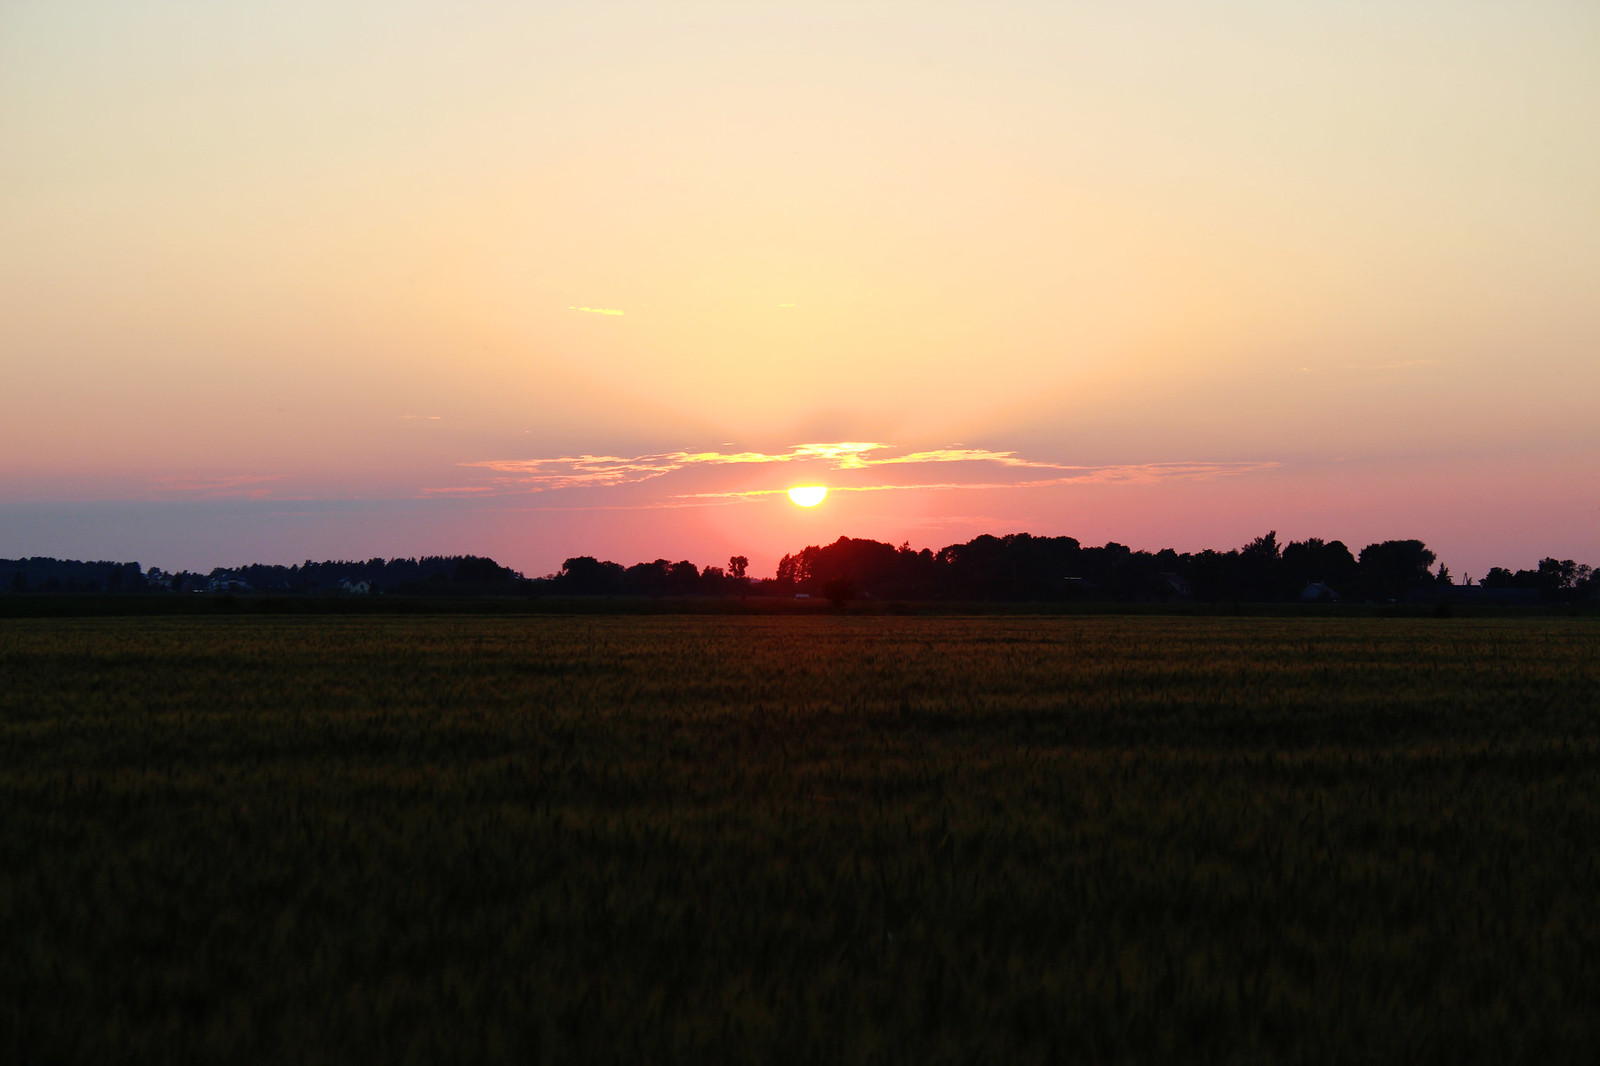 Sunset in the countryside